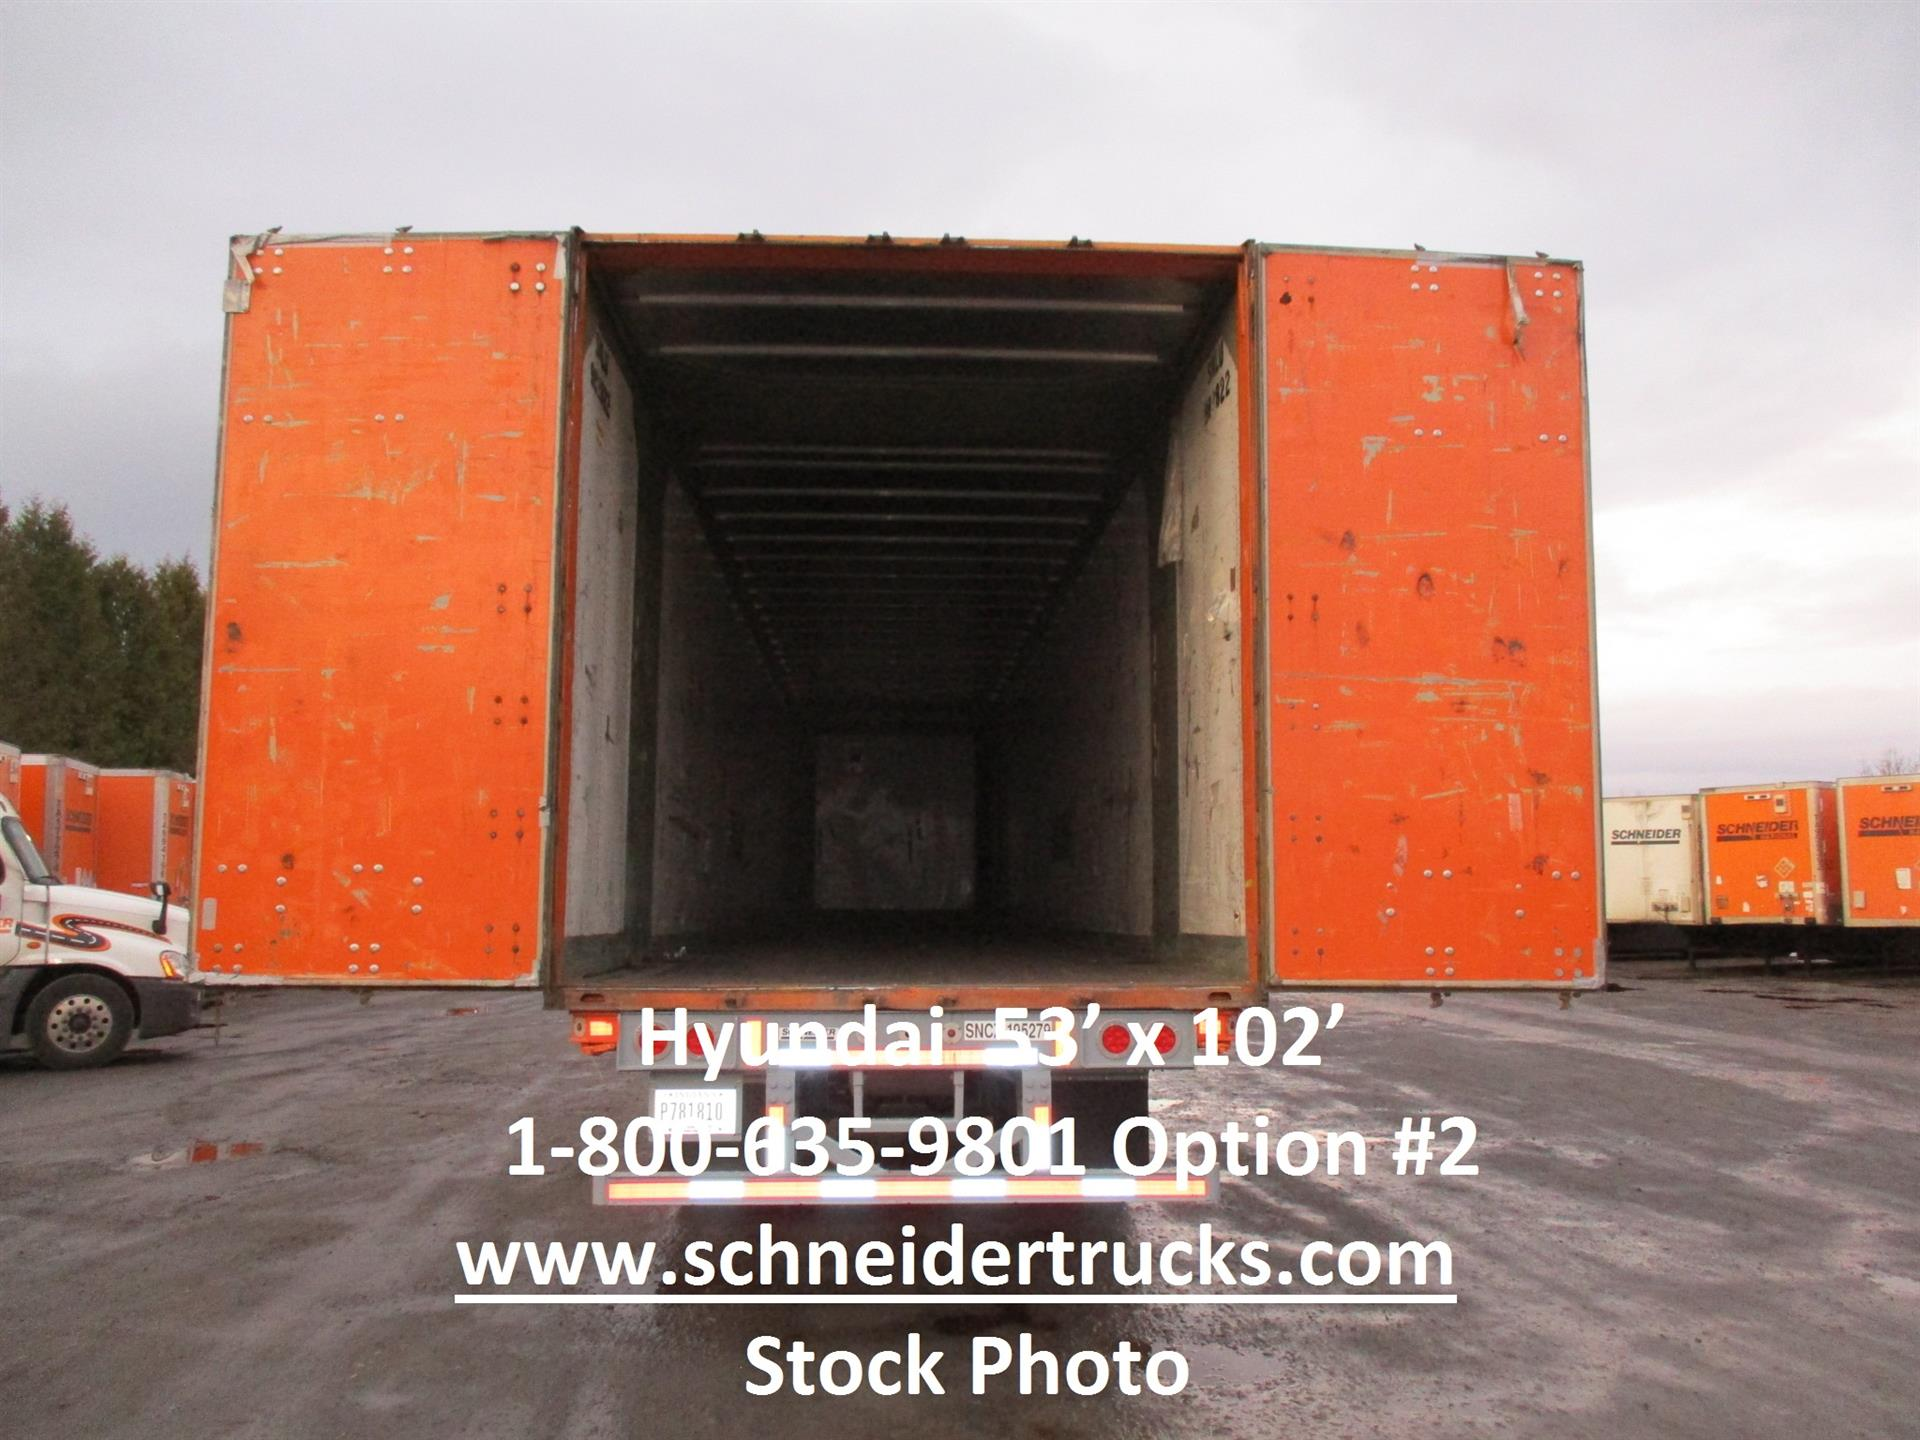 2006 Hyundai Container for sale-59151667